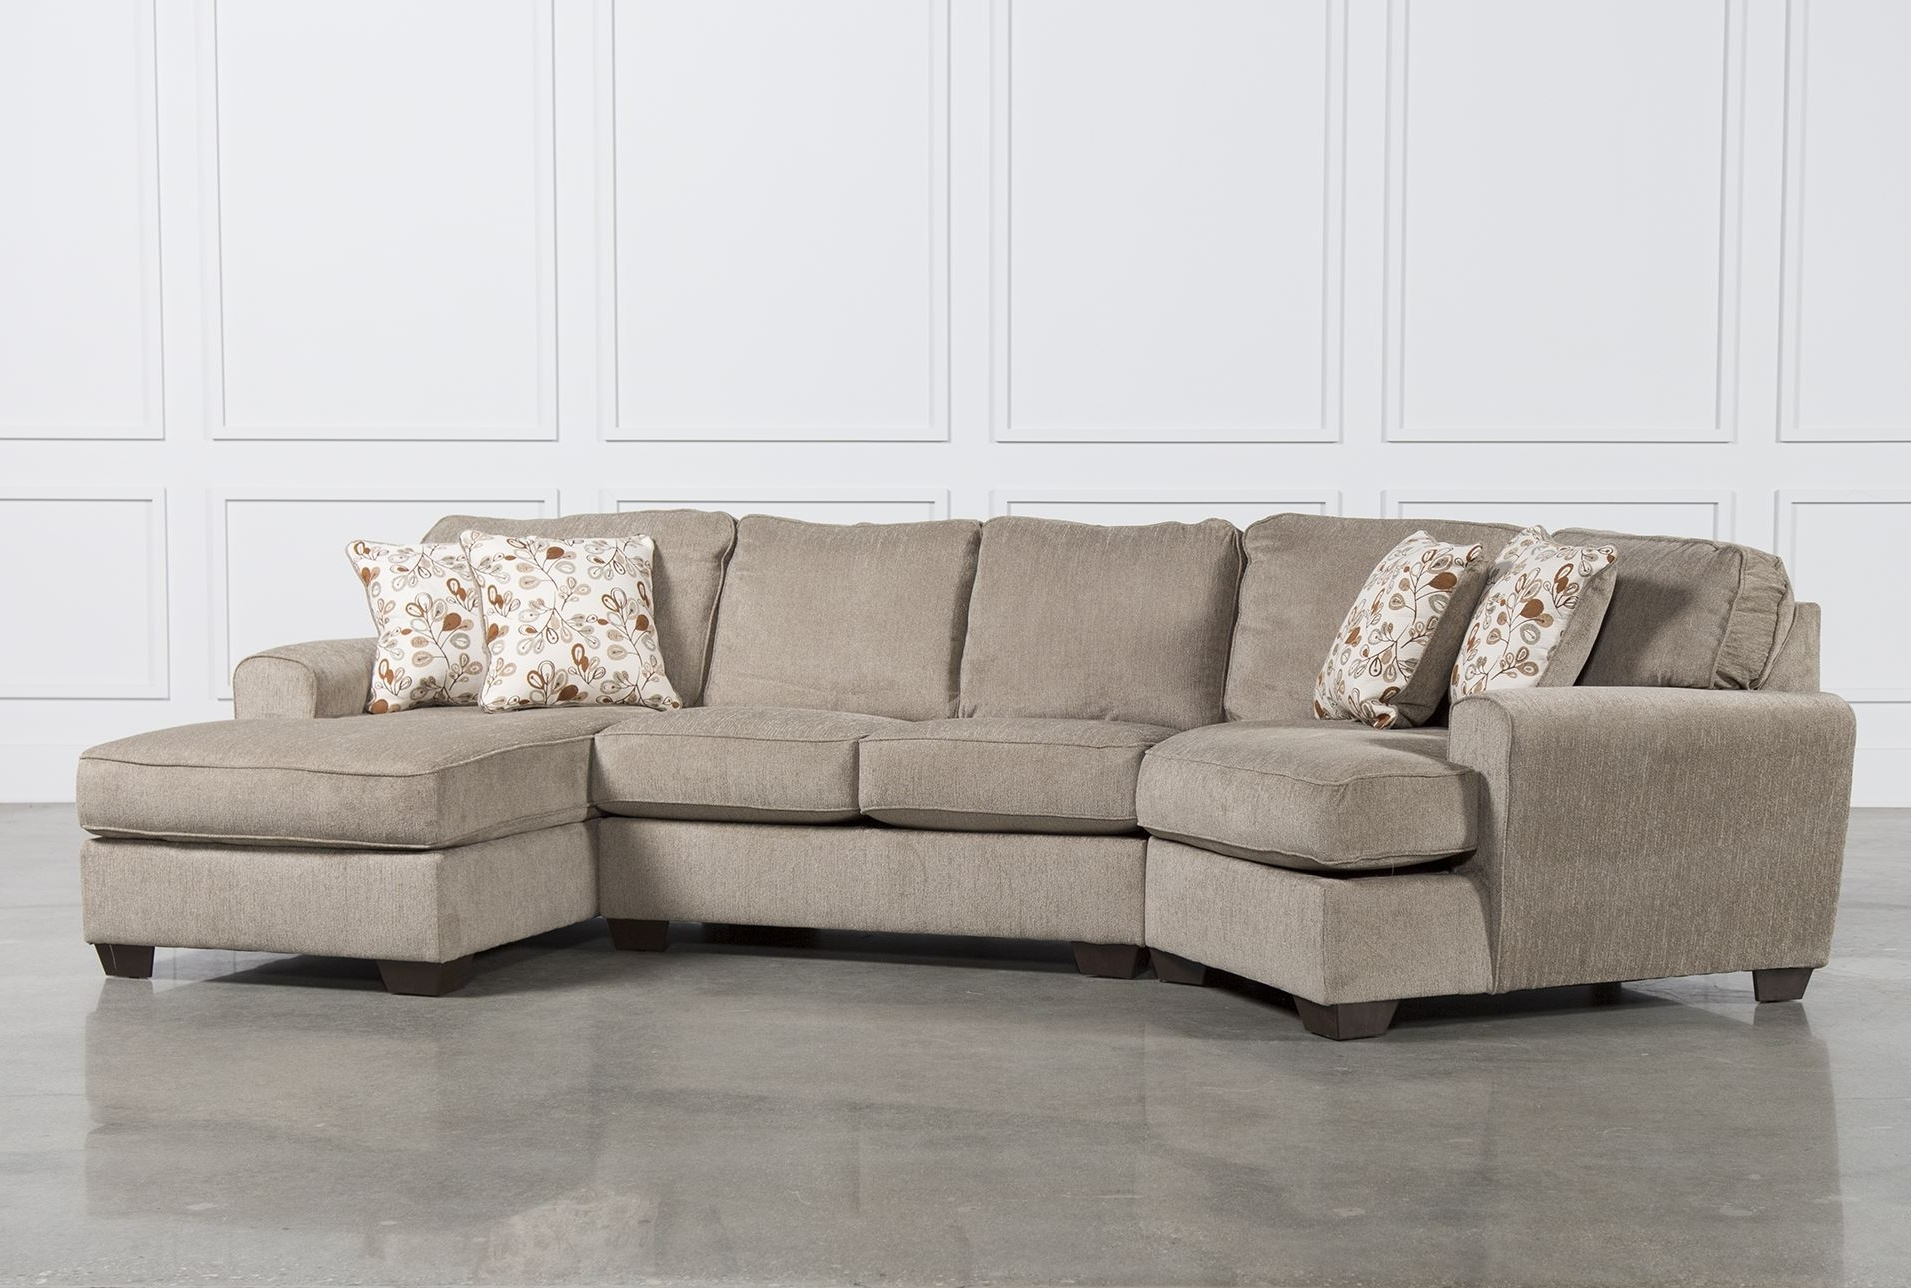 Favorite Gta Sectional Sofas For Furniture : Sectional Sofa Fabric Rc 216 088 Recliner Corner Couch (View 6 of 20)